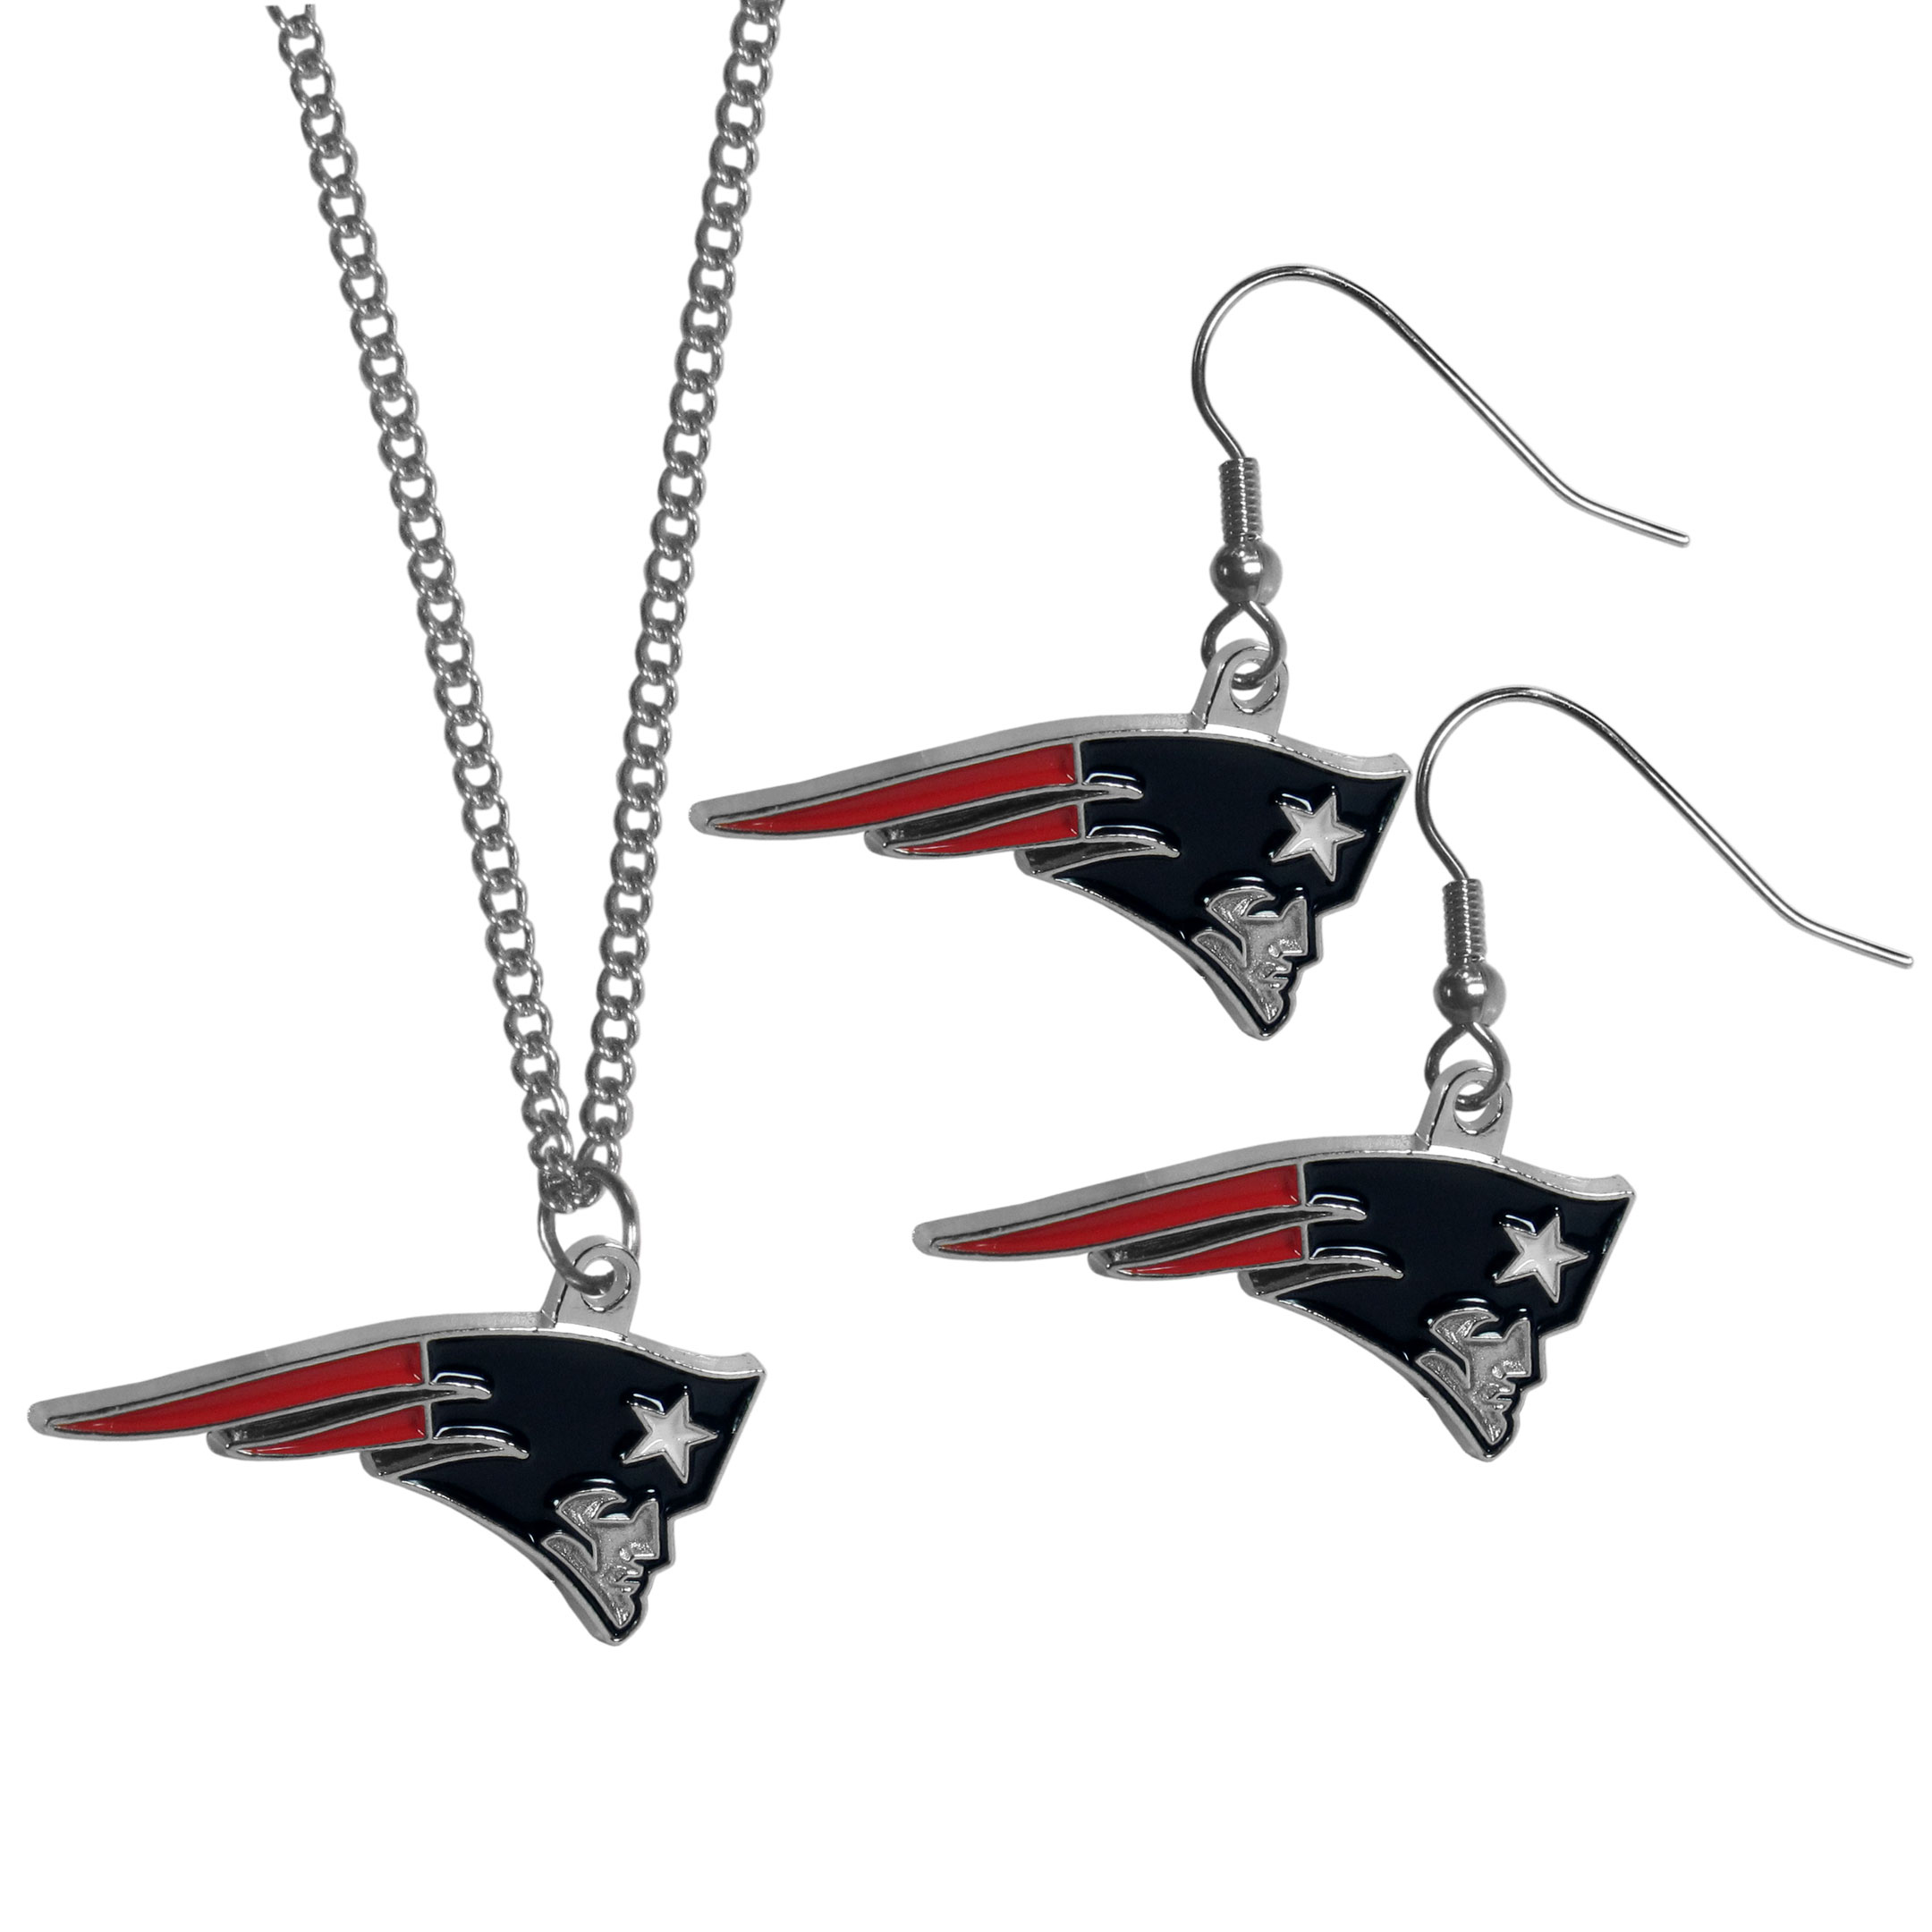 New England Patriots Dangle Earrings and Chain Necklace Set - This classic jewelry set contains are most popular New England Patriots dangle earrings and 22 inch chain necklace. The trendy, dangle earrings are lightweight and feature a fully cast metal team charm with enameled team colors. The matching necklace completes this fashion forward combo and is a spirited set that is perfect for game day but nice enough for everyday.